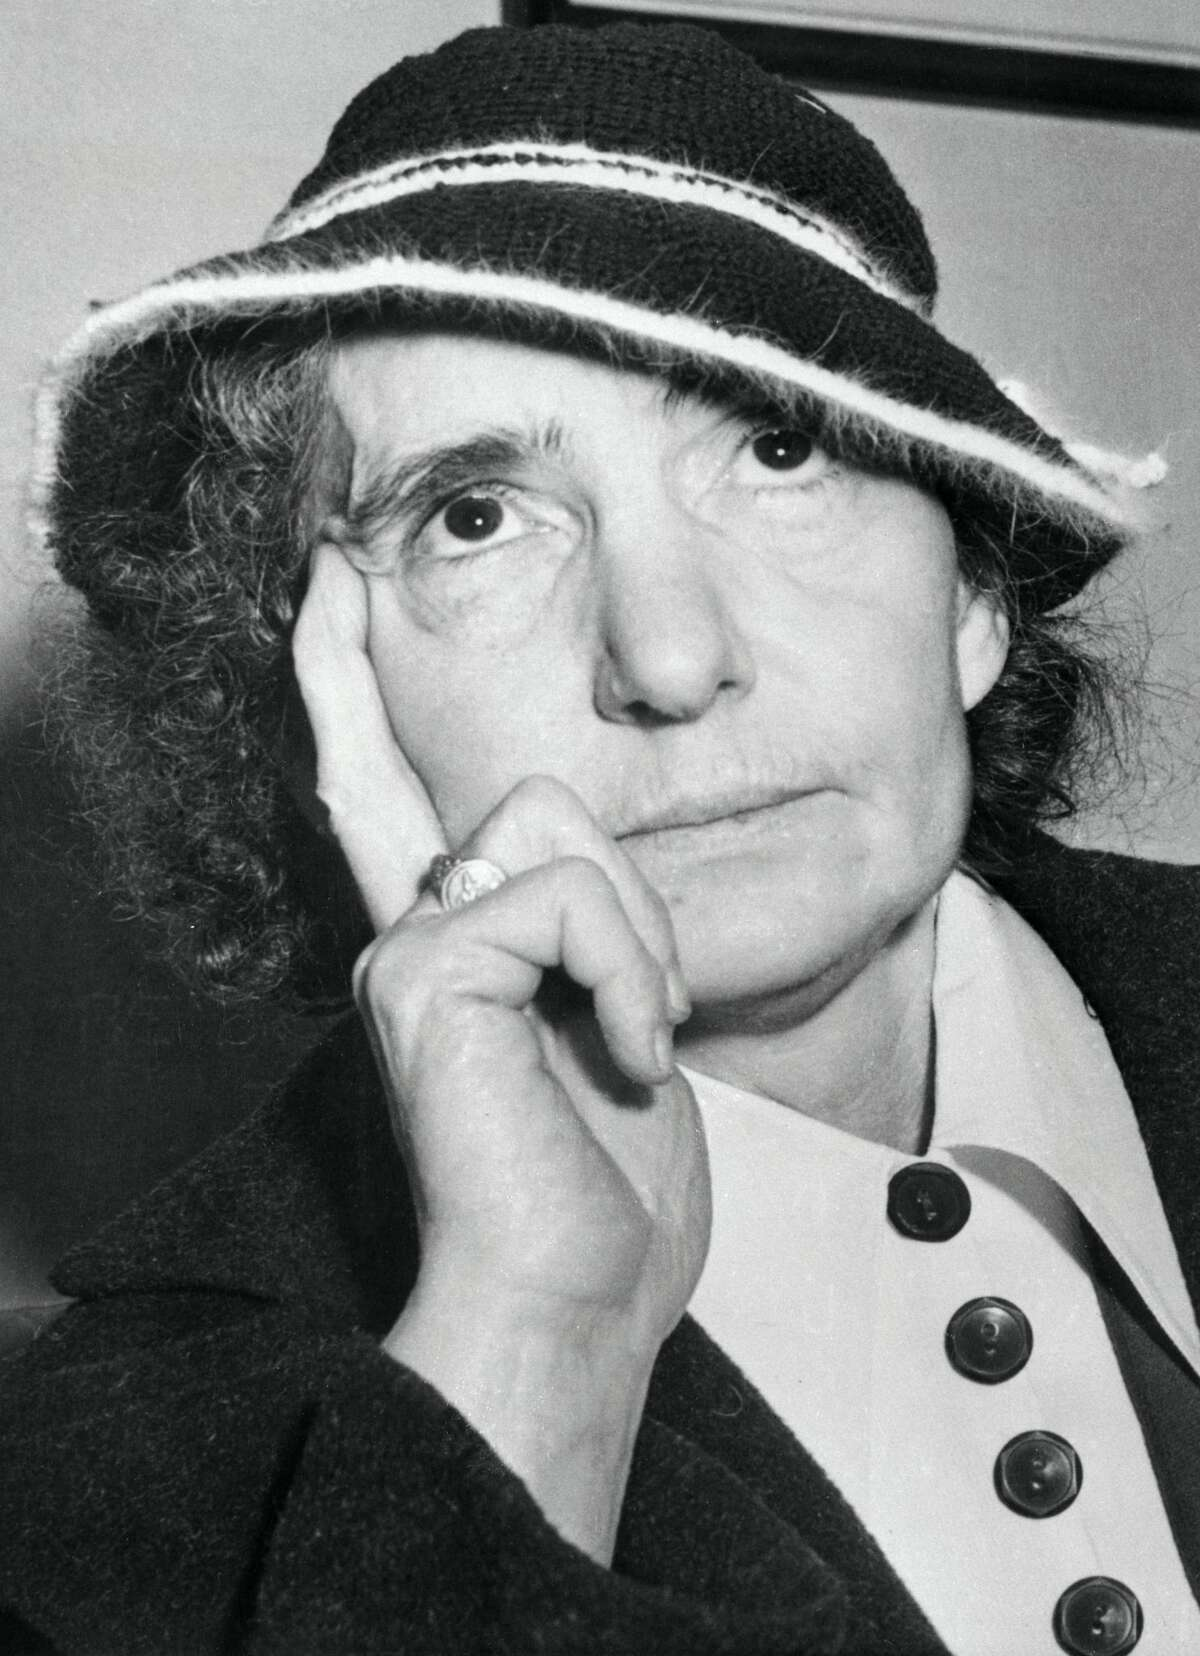 Juanita Spinelli was reported to be a former pro wrestler, madam and trained nurse, though none of these can be confirmed.